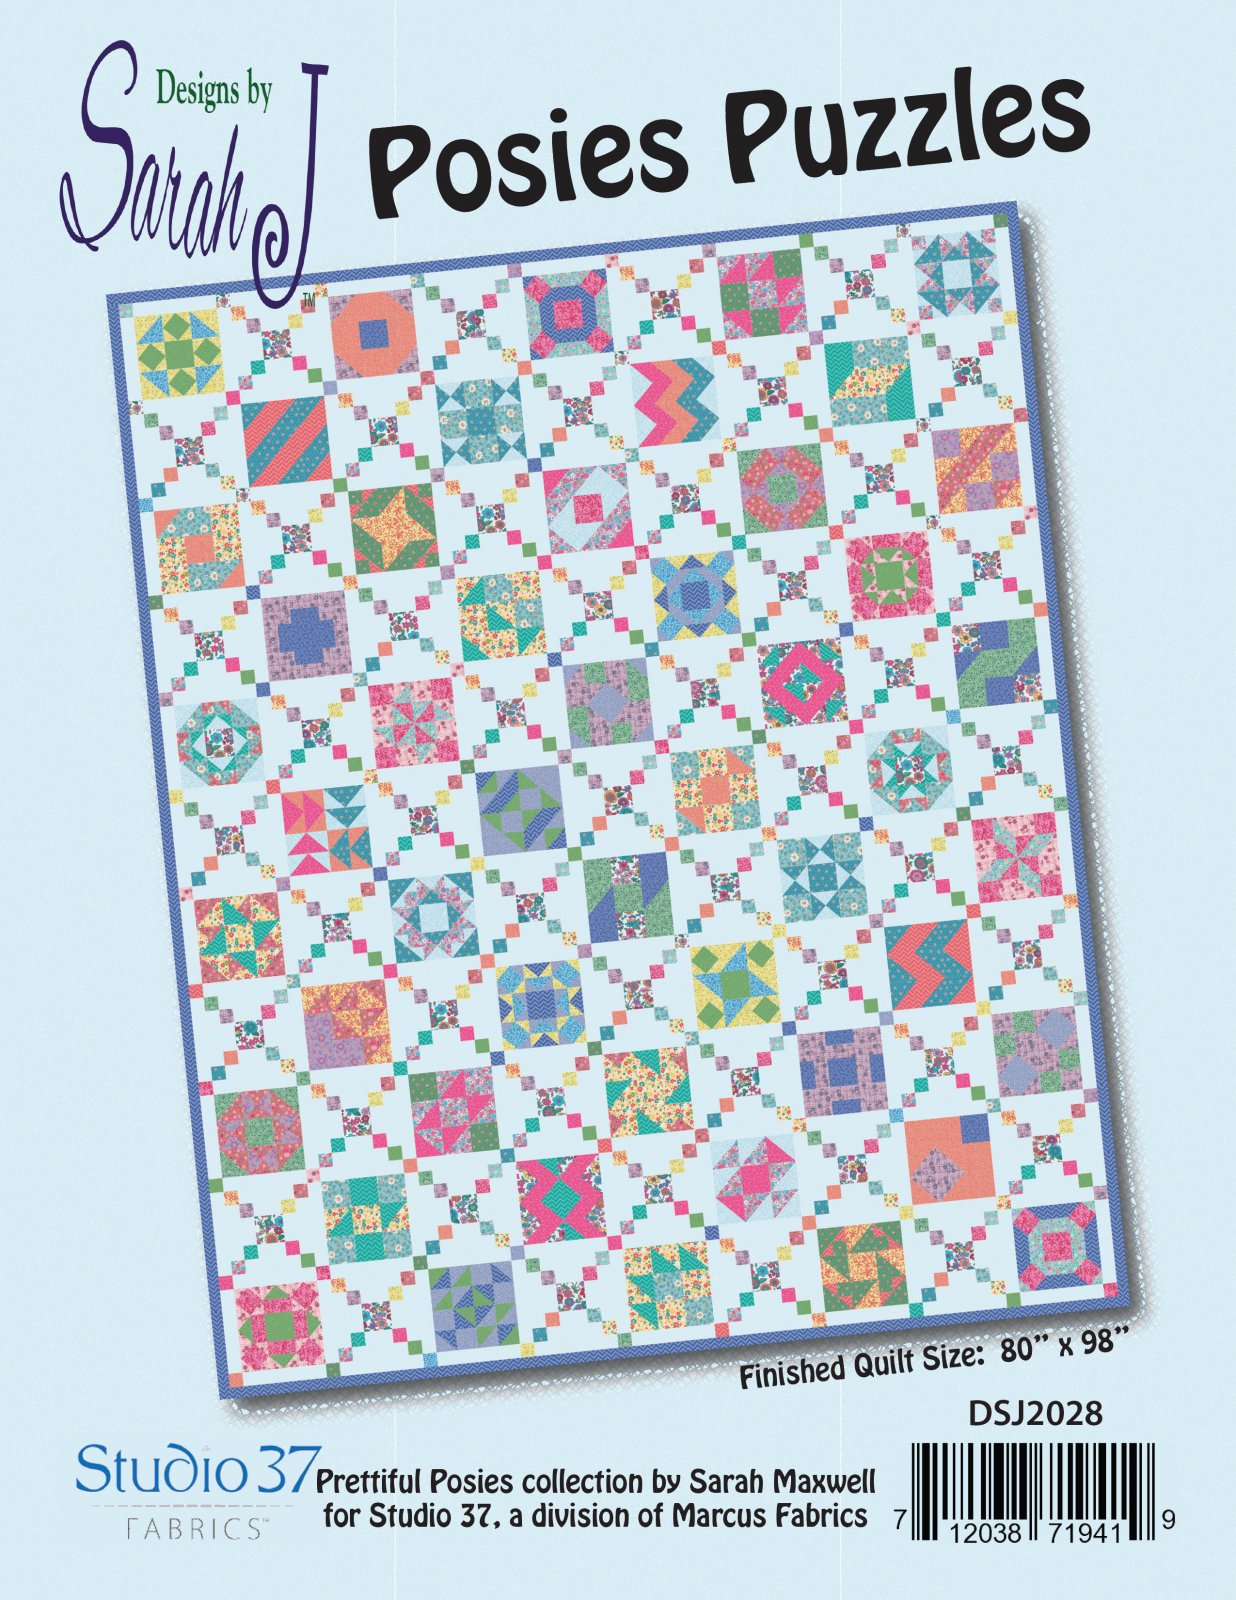 Posies Puzzles pattern